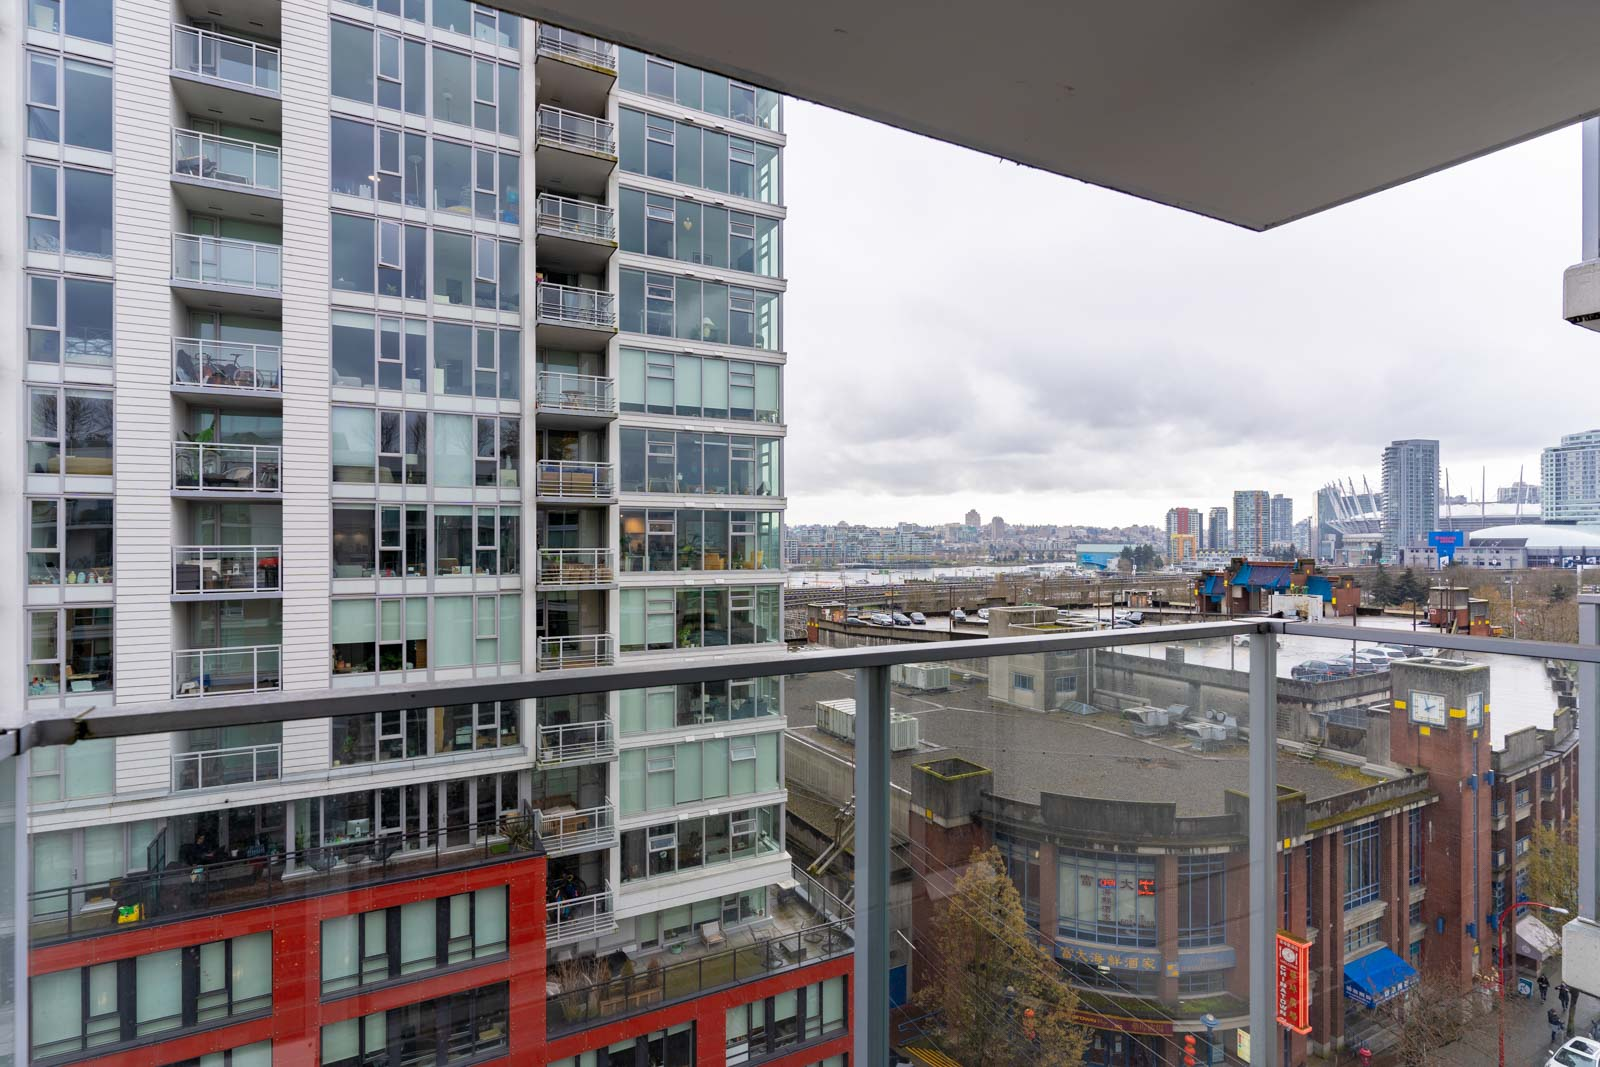 view overlooking the city landscape of downtown Vancouver in condo managed by Birds Nest Properties